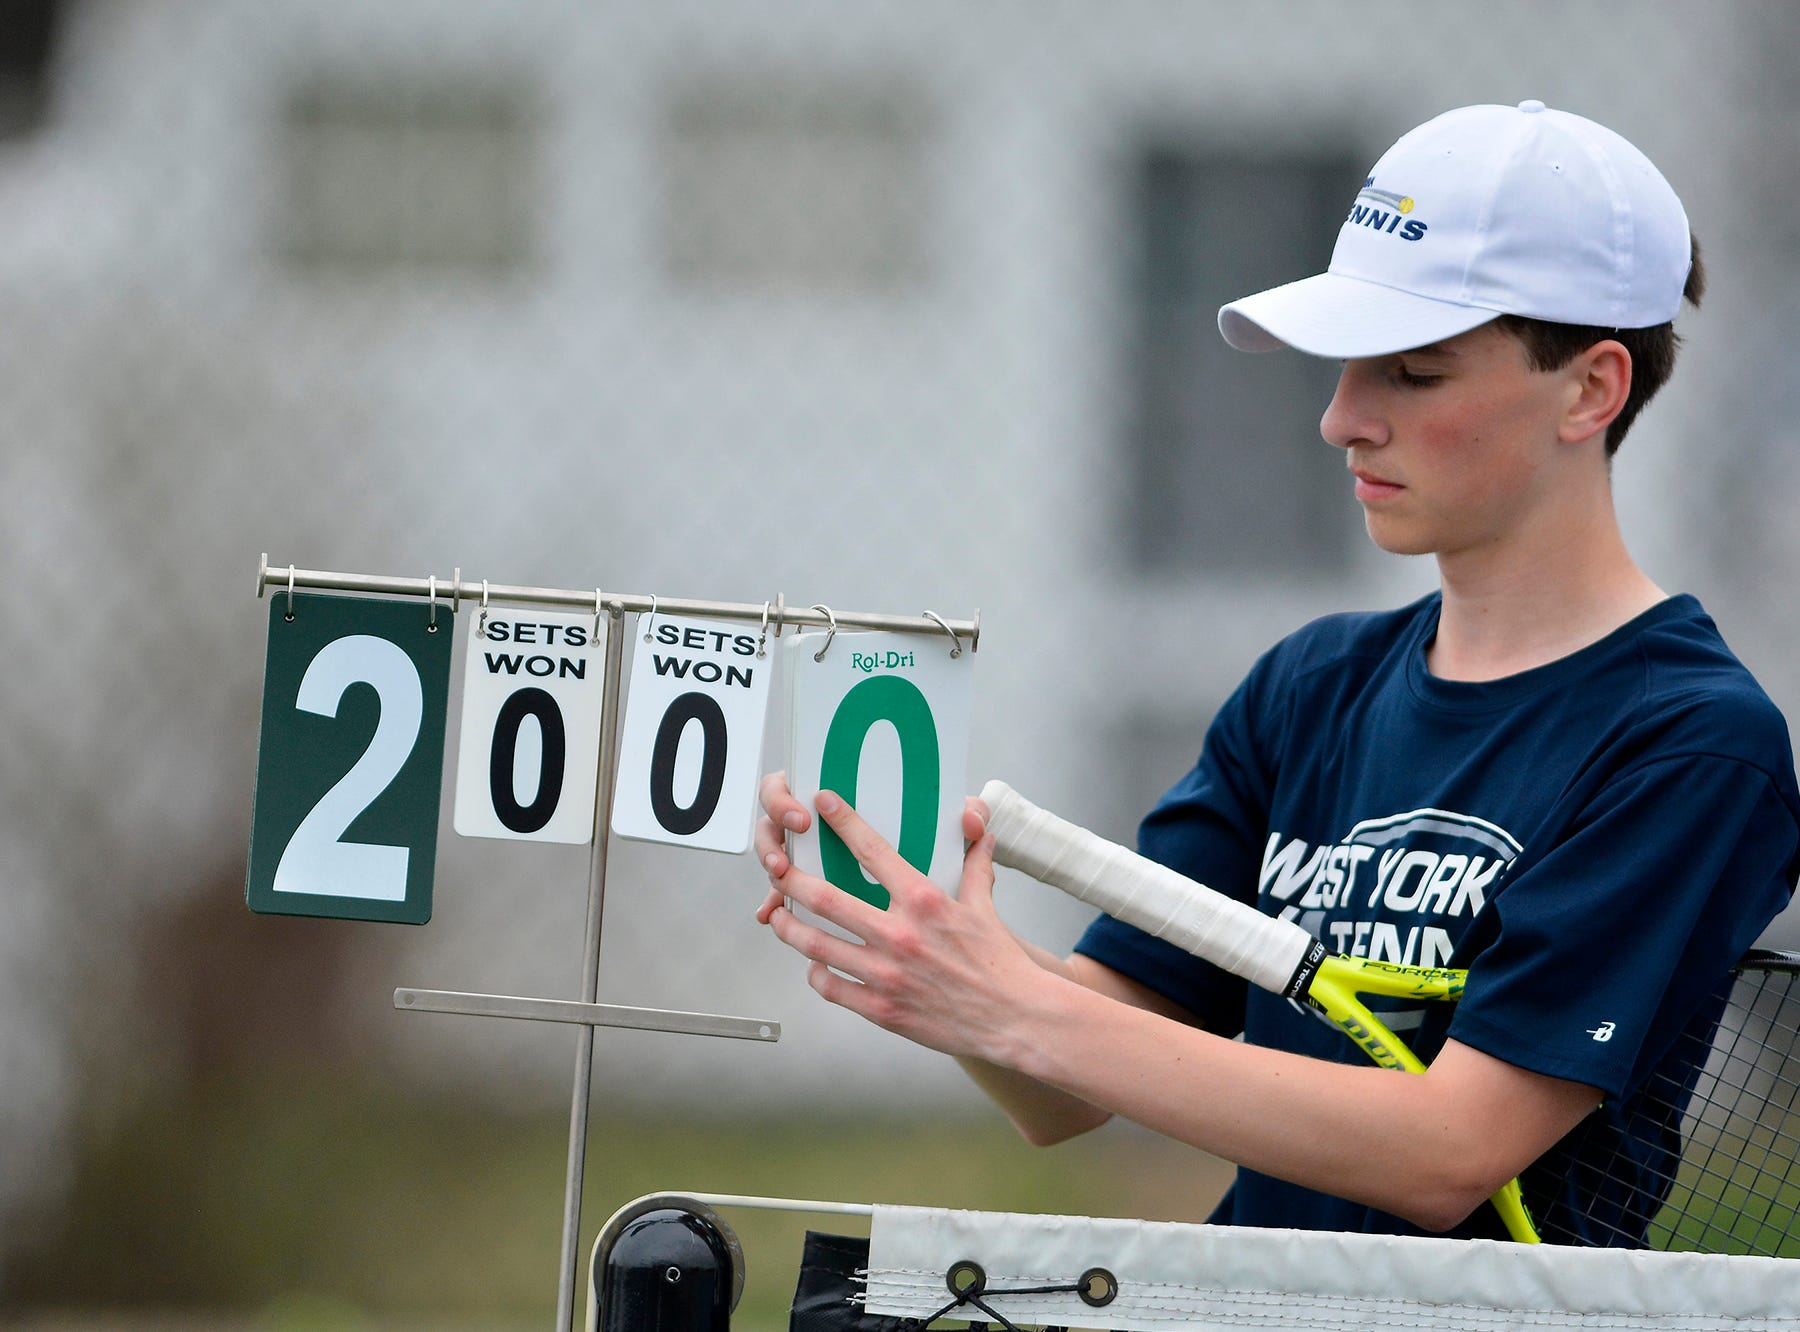 West York's Augie Citrone changes the score cards while playing Josh Lynn of Hanover in the number one seed match, Monday, April 8, 2019.